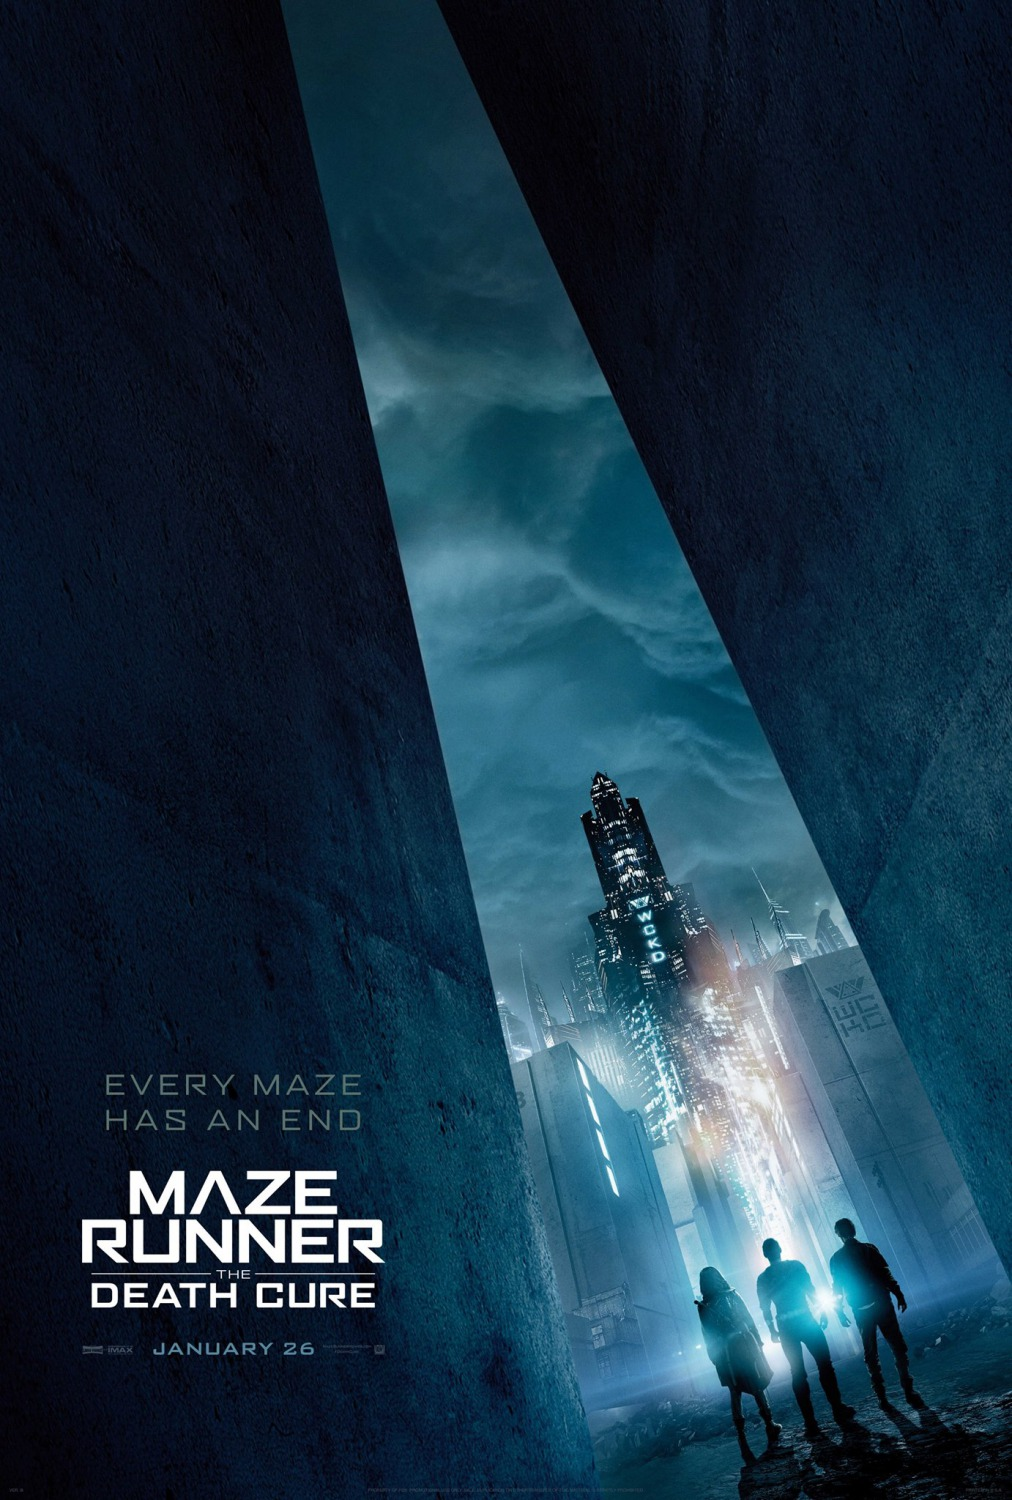 8 maze runner top movie posters of 2018